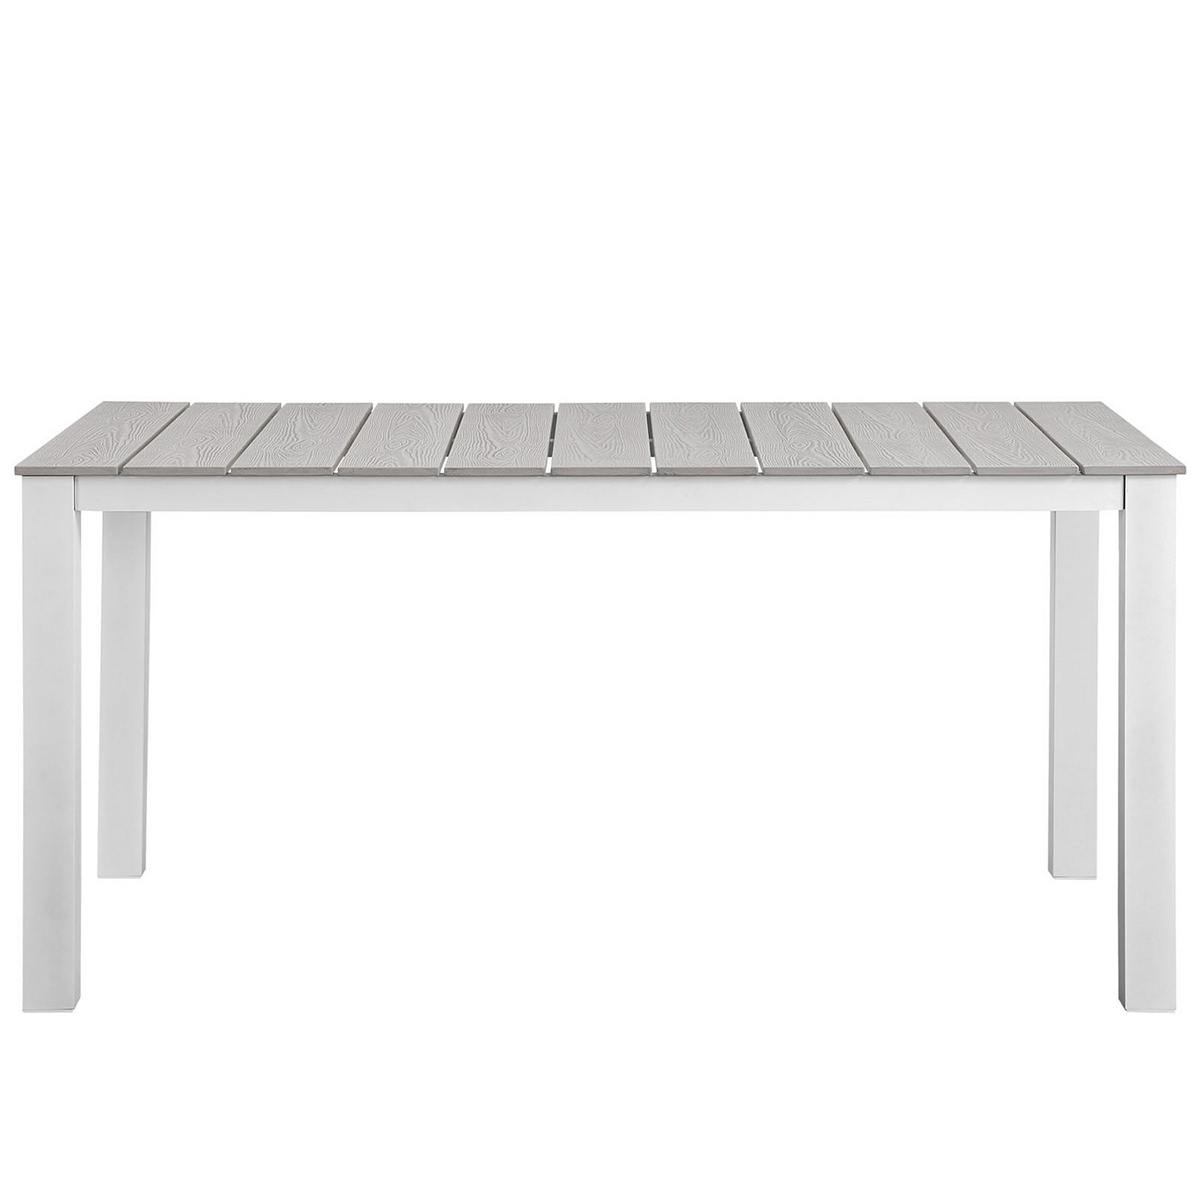 Modway Maine 63 Outdoor Patio Dining Table - White/Light Gray